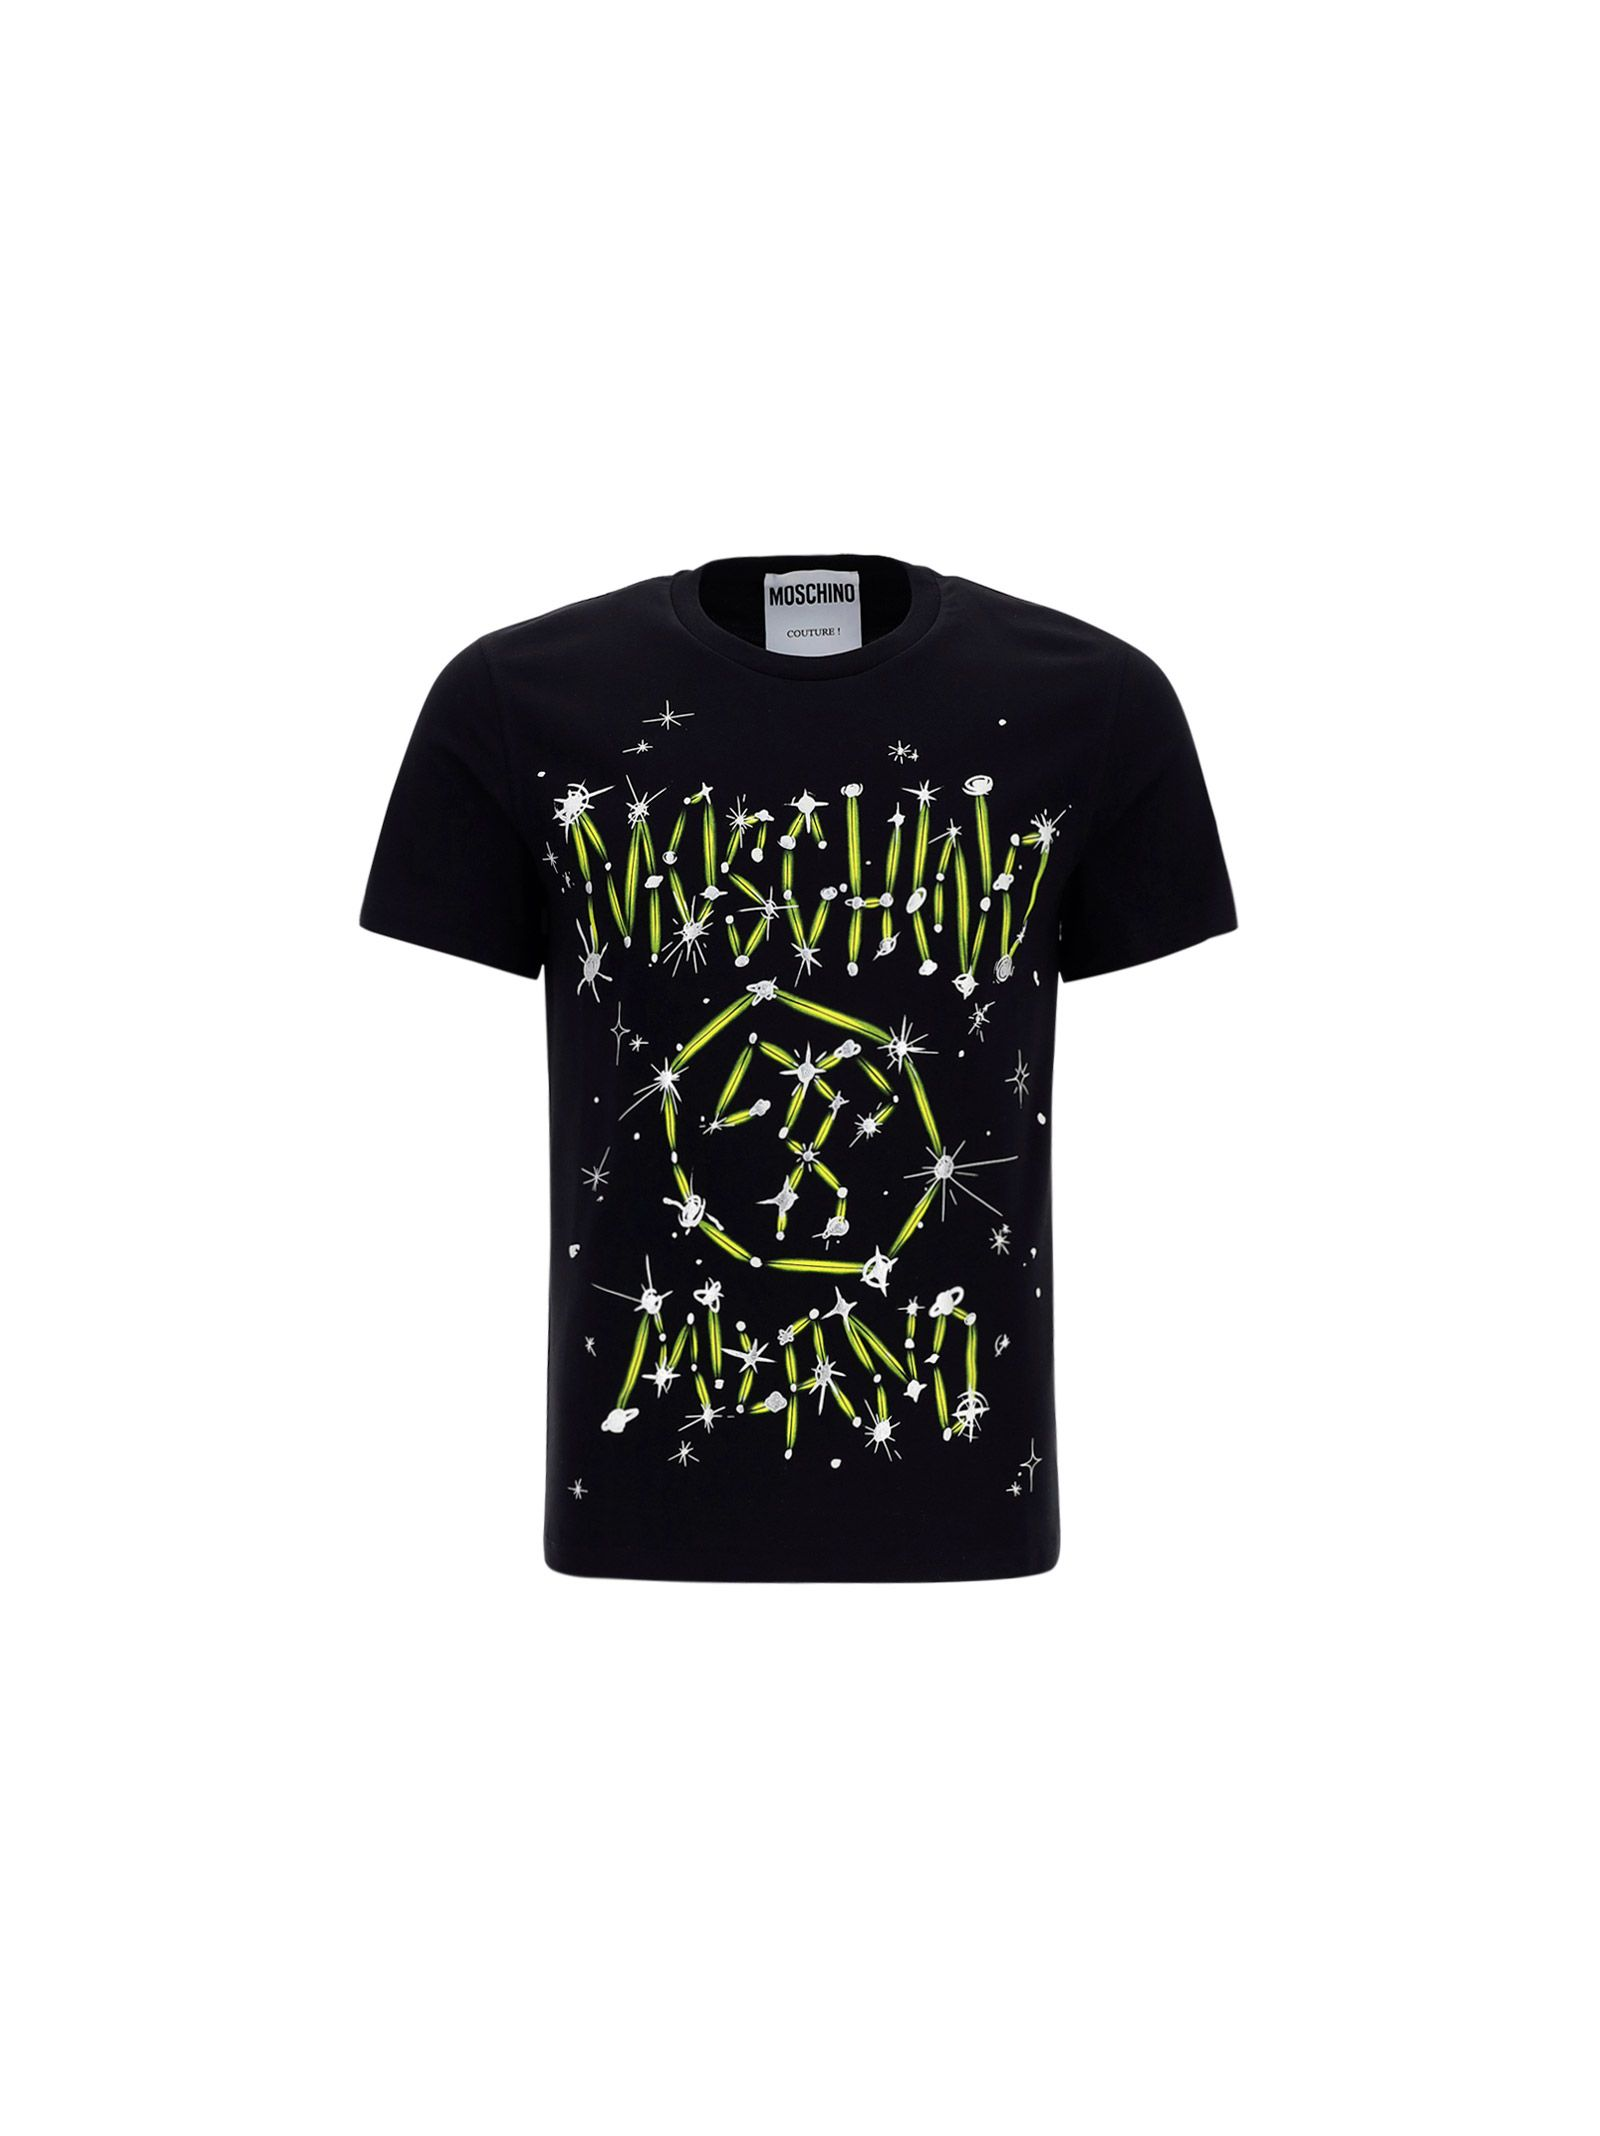 Moschino Cottons MOSCHINO MEN'S BLACK OTHER MATERIALS T-SHIRT